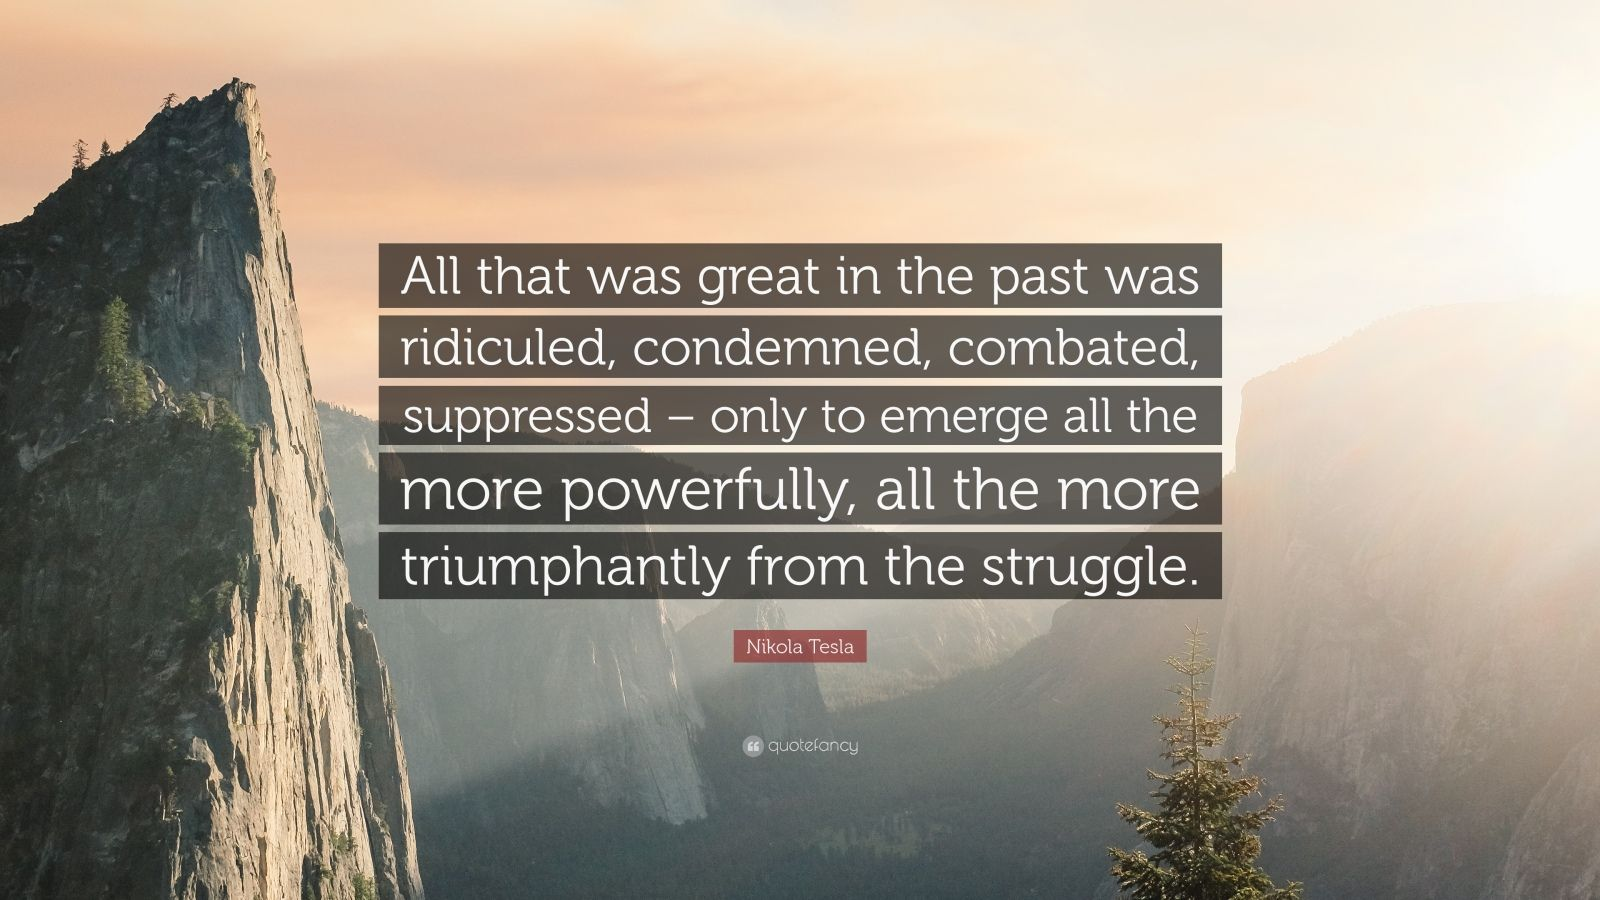 """Nikola Tesla Quote: """"All that was great in the past was ridiculed, condemned, combated, suppressed – only to emerge all the more powerfully, all the more triumphantly from the struggle."""""""